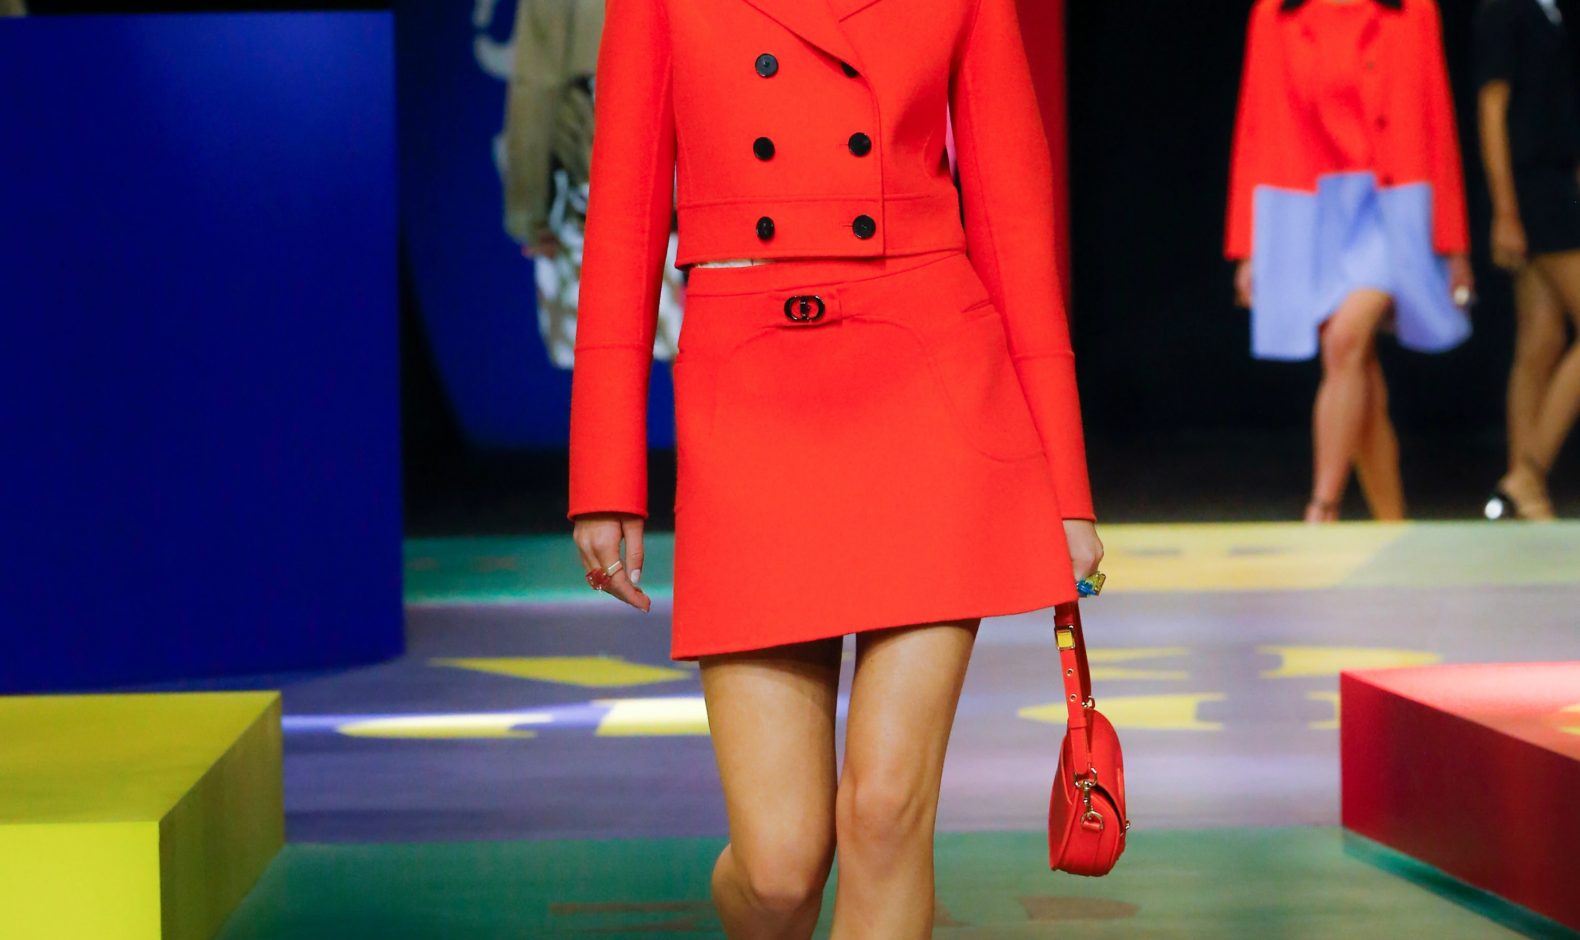 Christian Dior Spring-Summer 2022 Runway Bags Collection